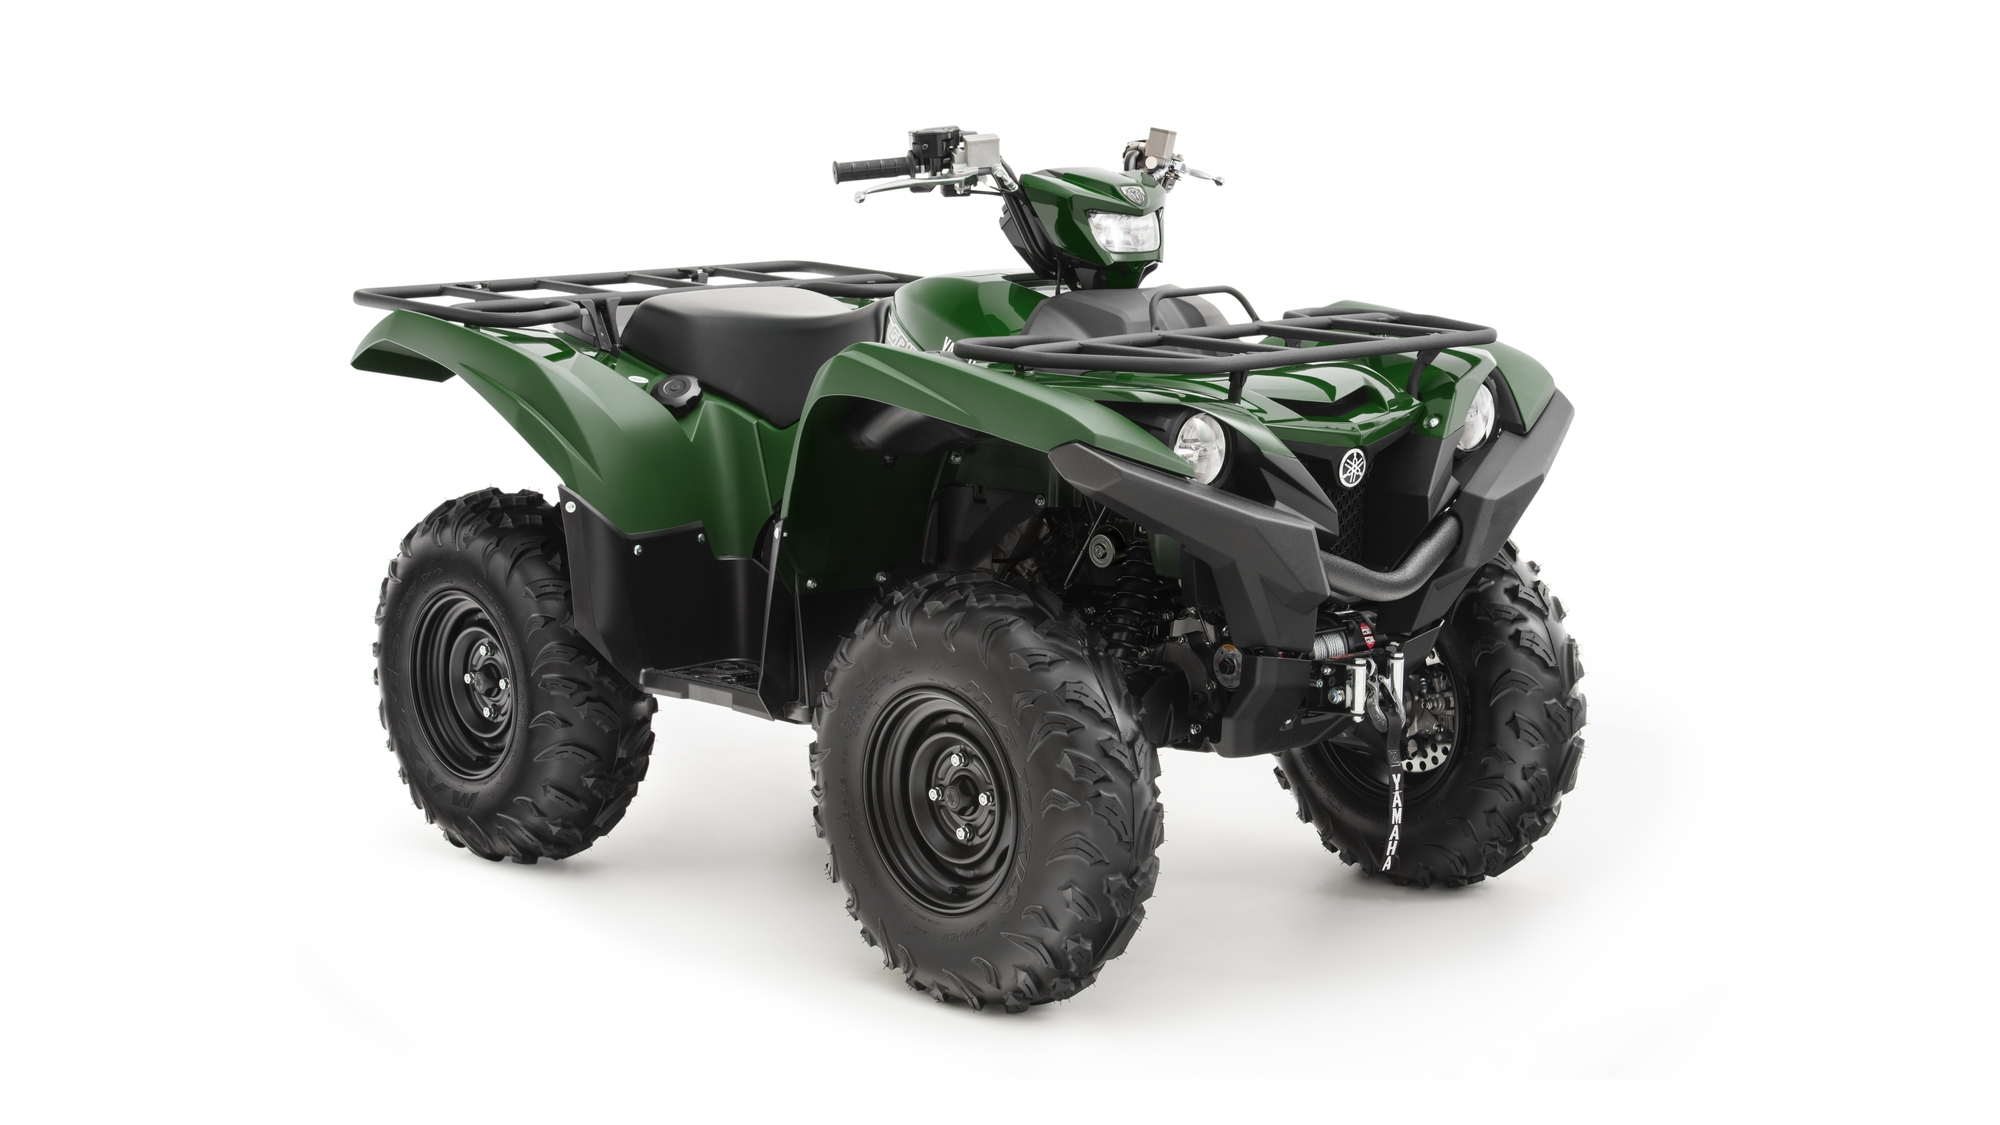 Yamaha Grizzly 700 - 16